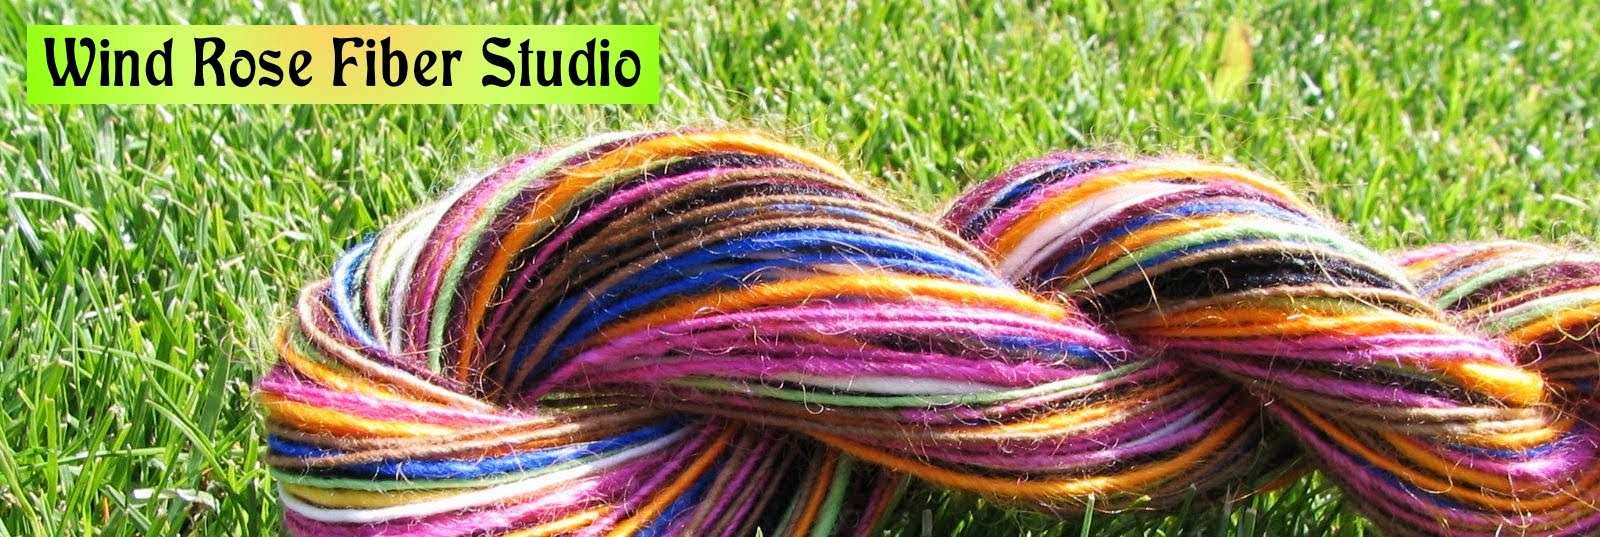 Wind Rose Fiber Studio